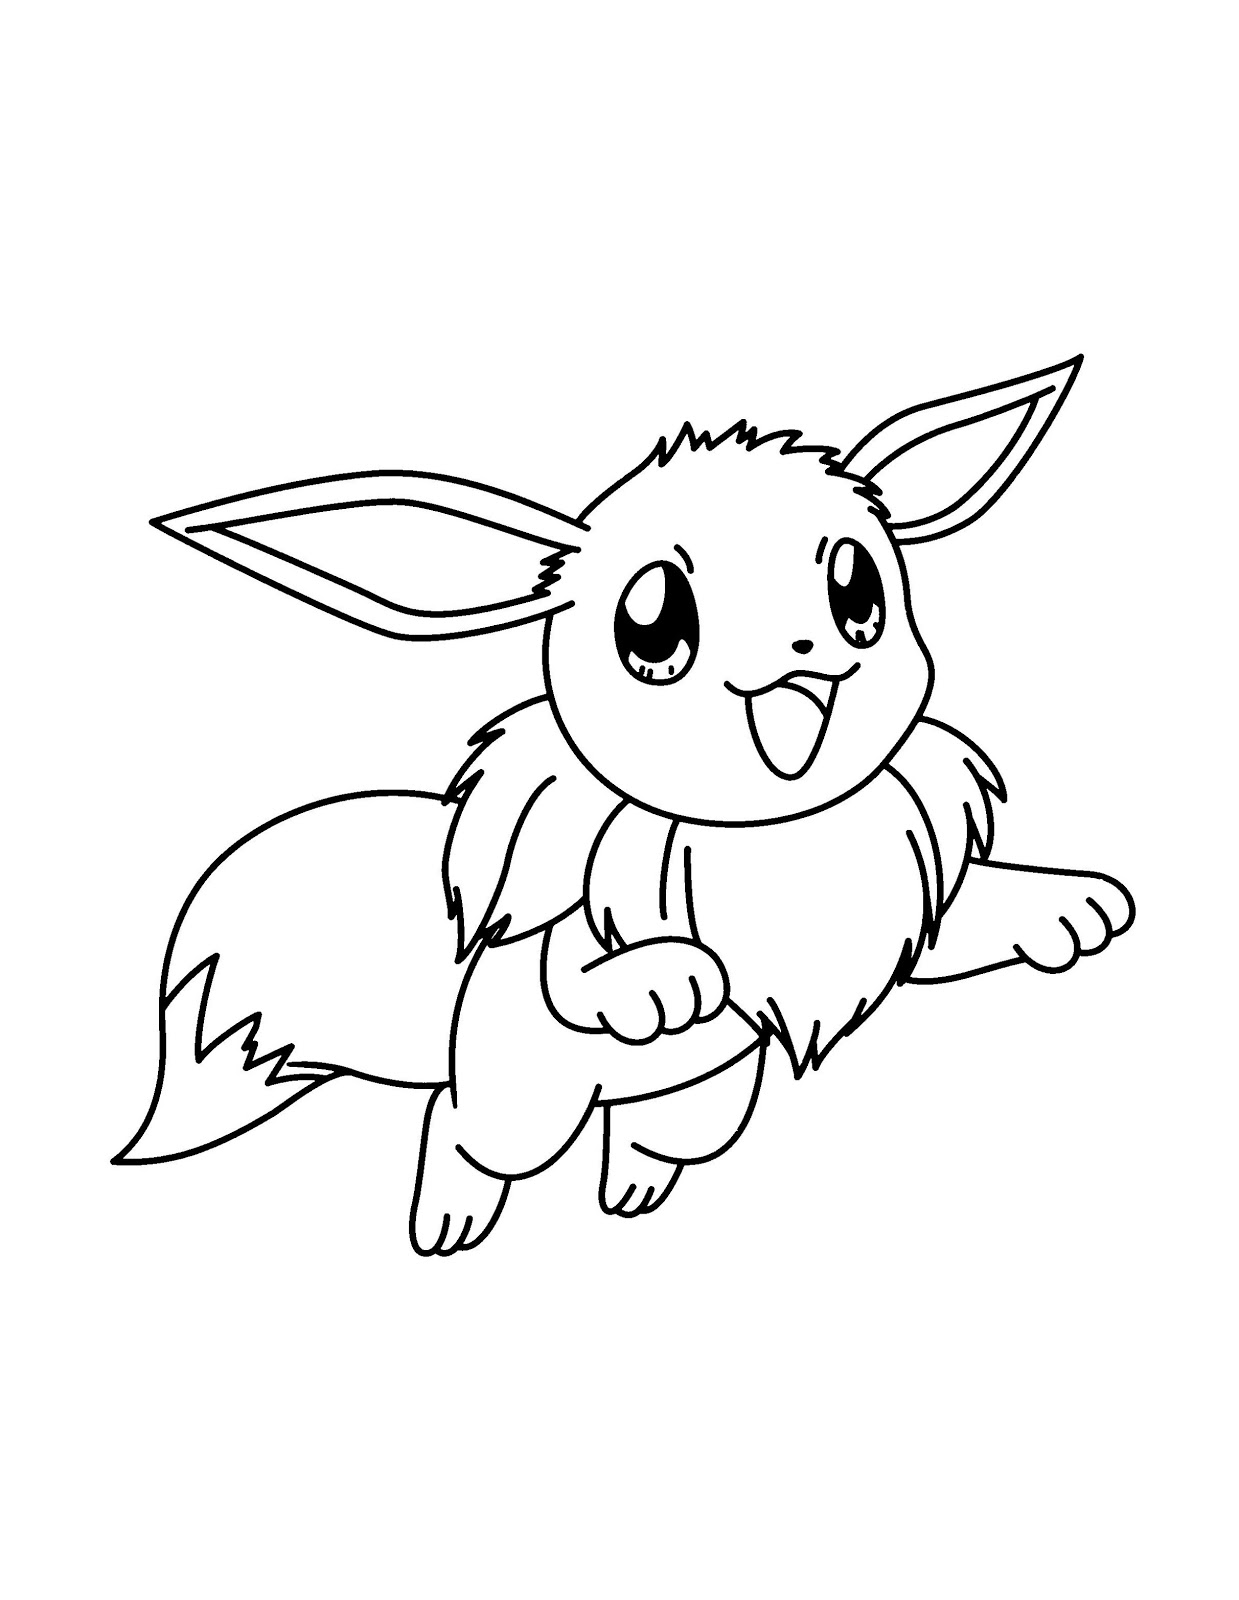 Eevee Coloring Pages Printable Free Pokemon Coloring Pages